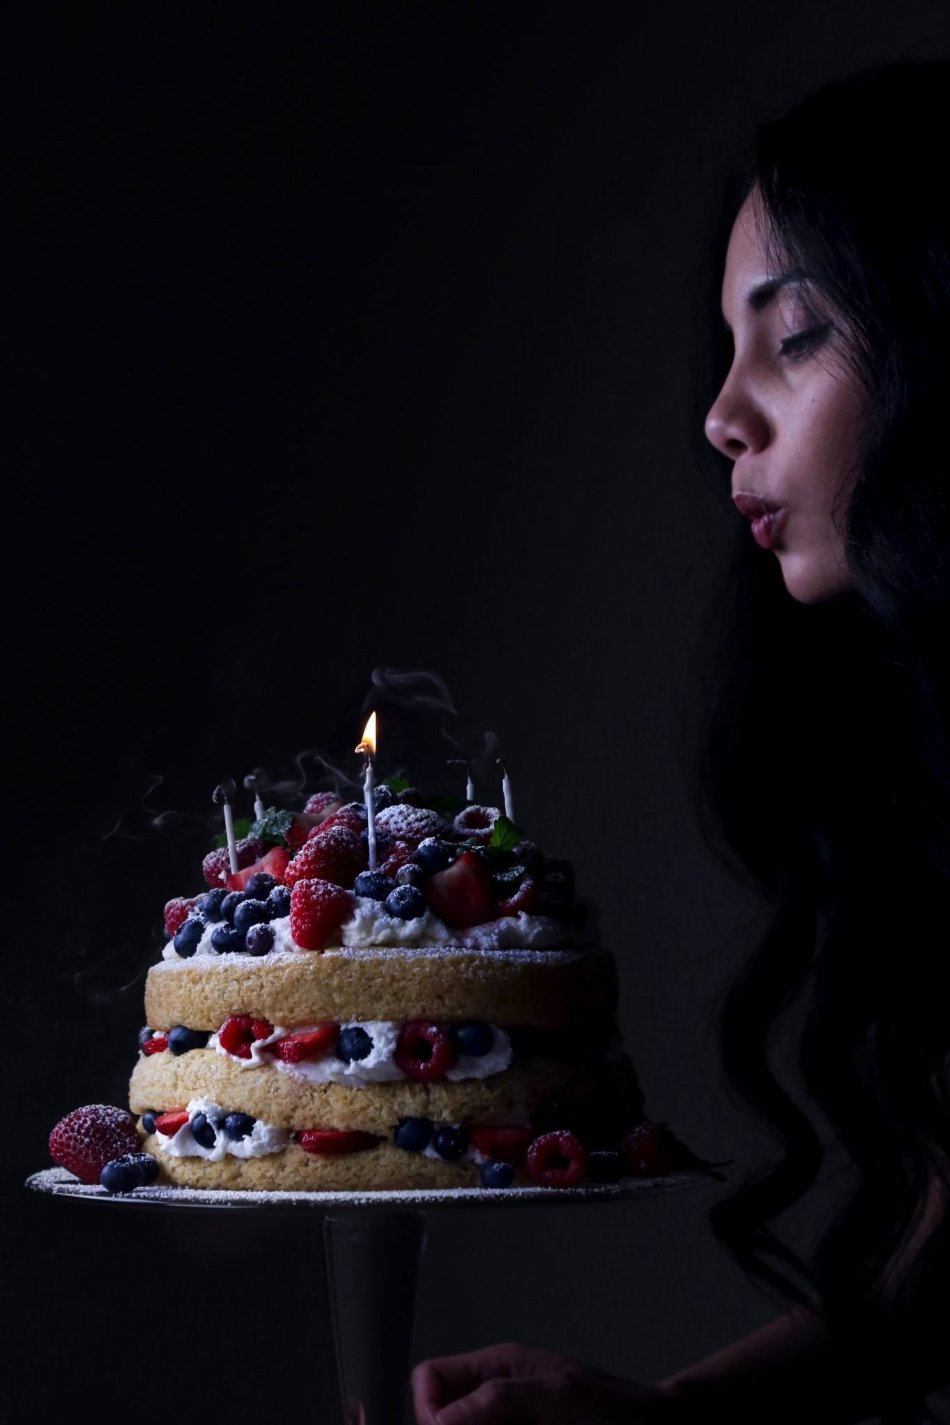 Vanilla Layer Cake with Fresh Berries | Vegan friendly with a gluten free option.